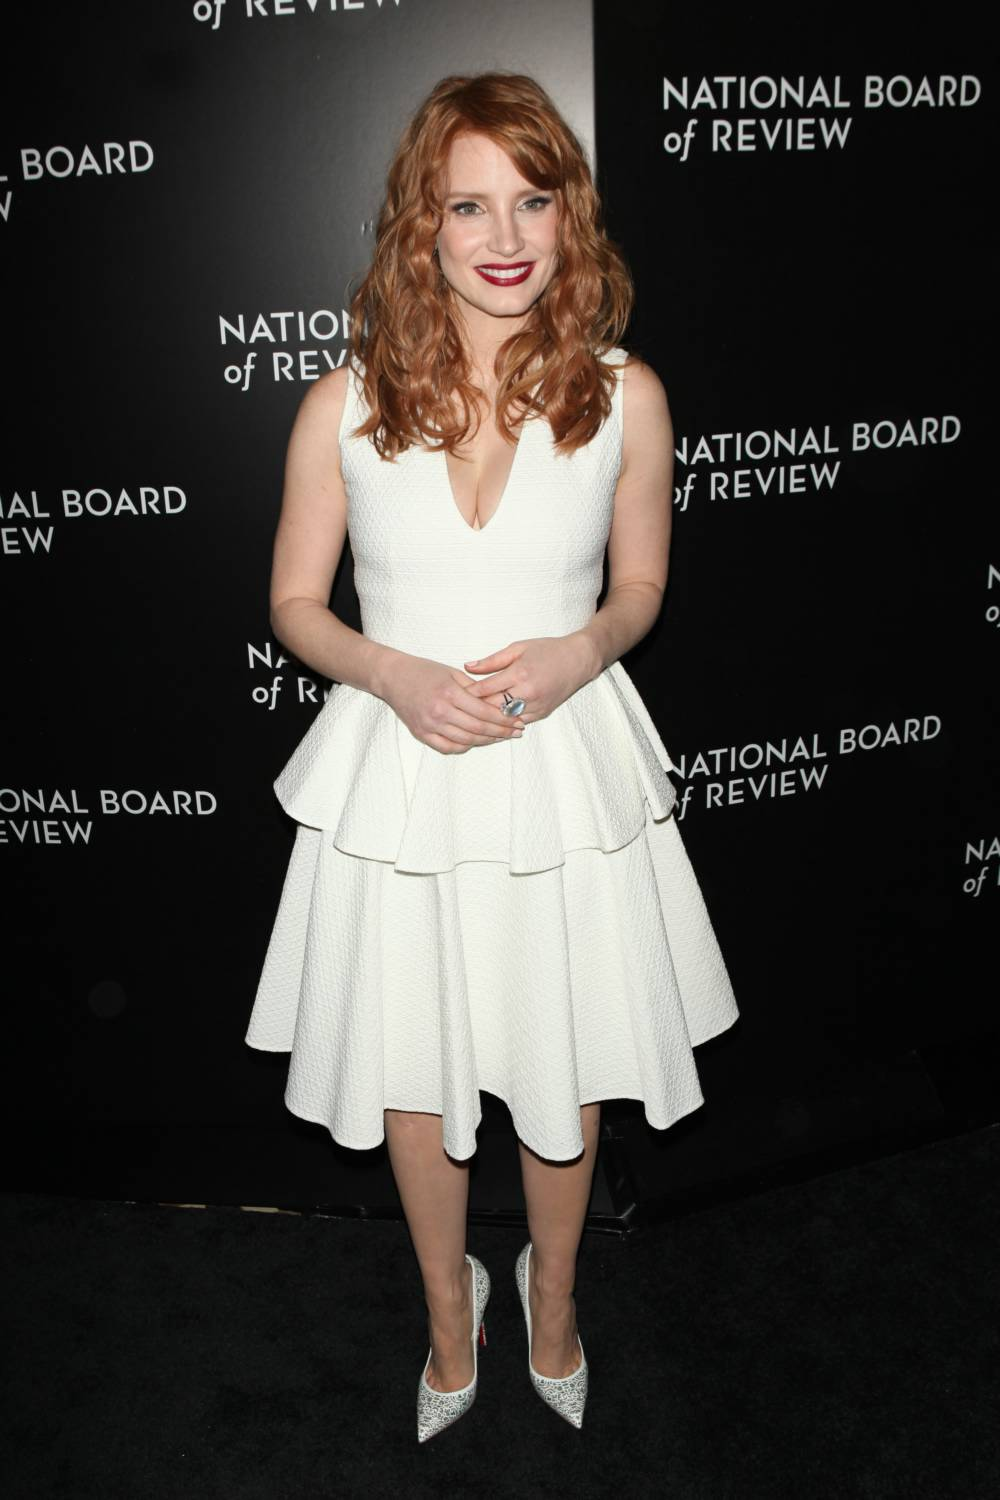 jessica-chastain-alexander-mcqueen-2014-national-board-review-gala